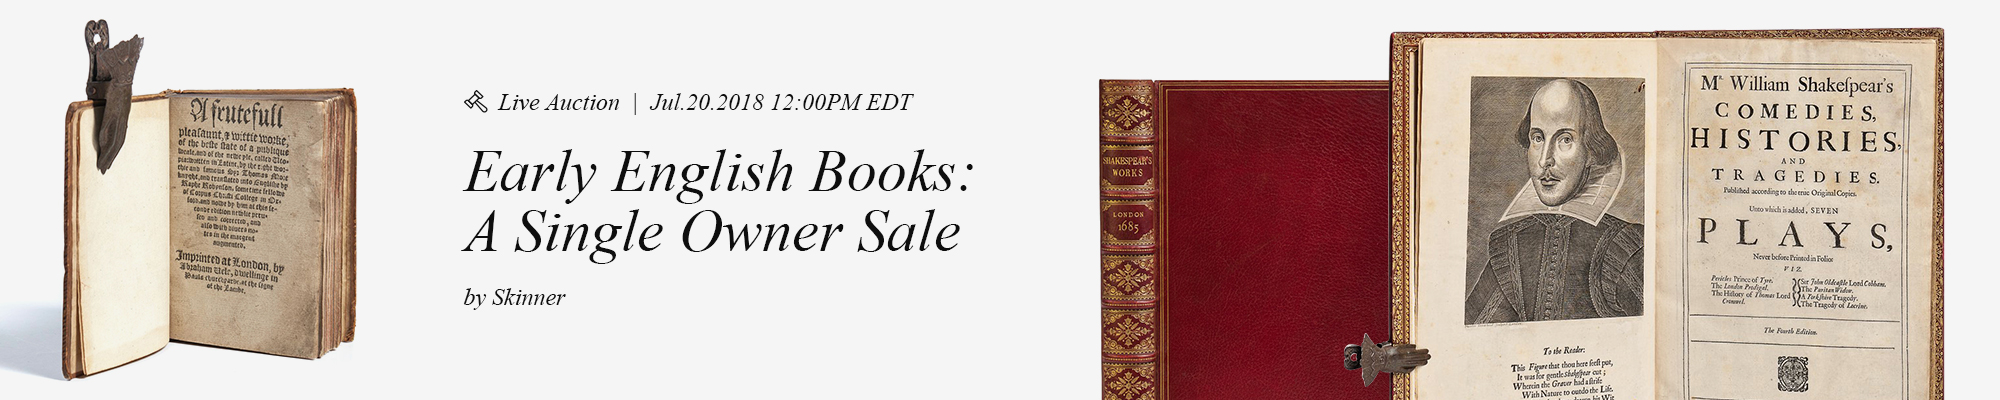 Early English Books: A Single Owner Sale, Skinner